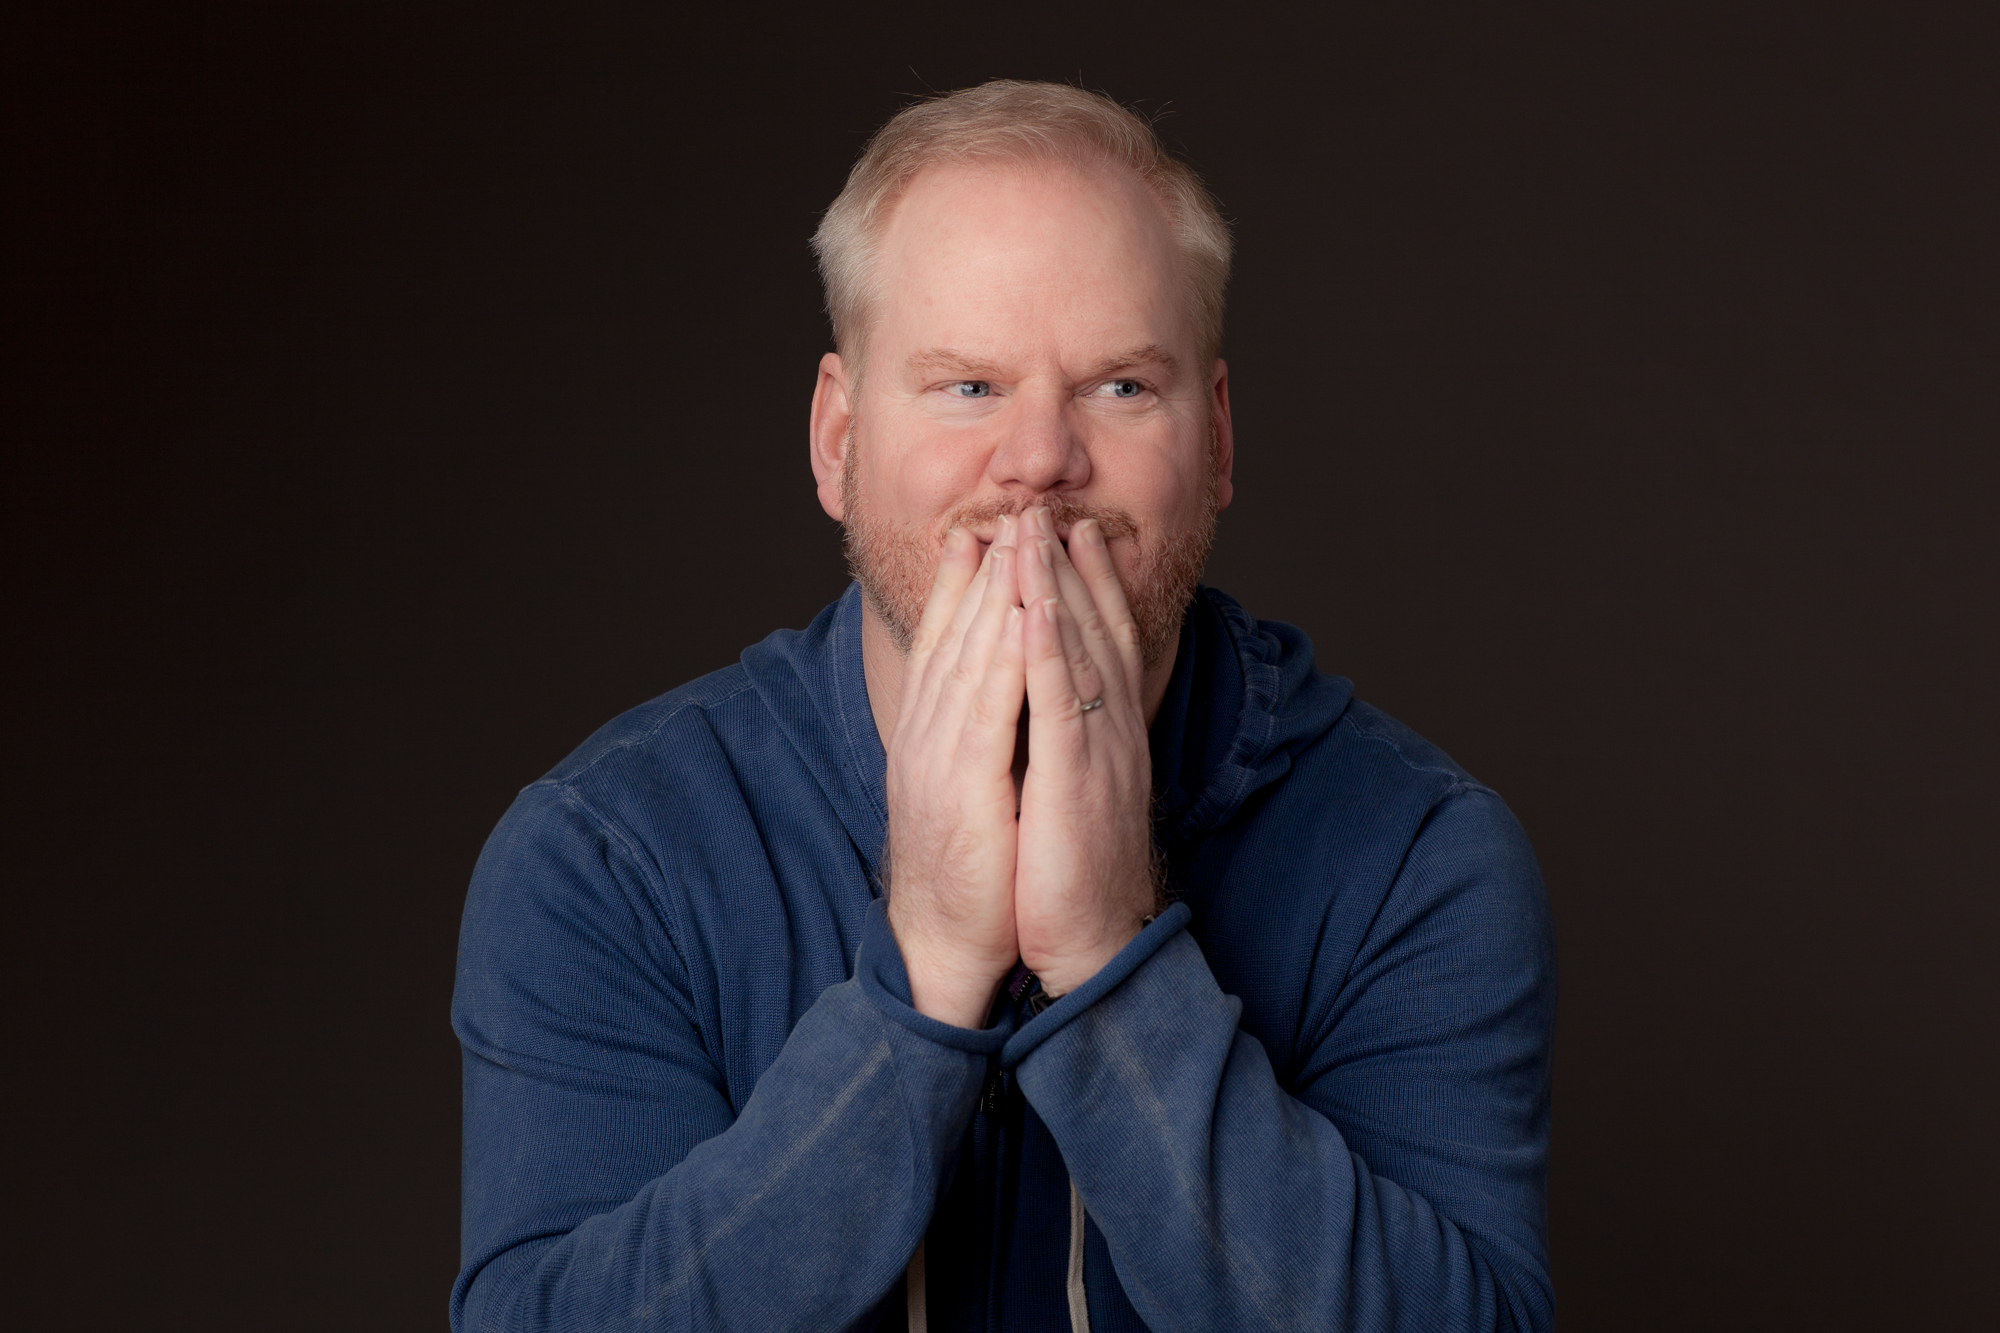 Jim Gaffigan earned a  million dollar salary, leaving the net worth at 6 million in 2017